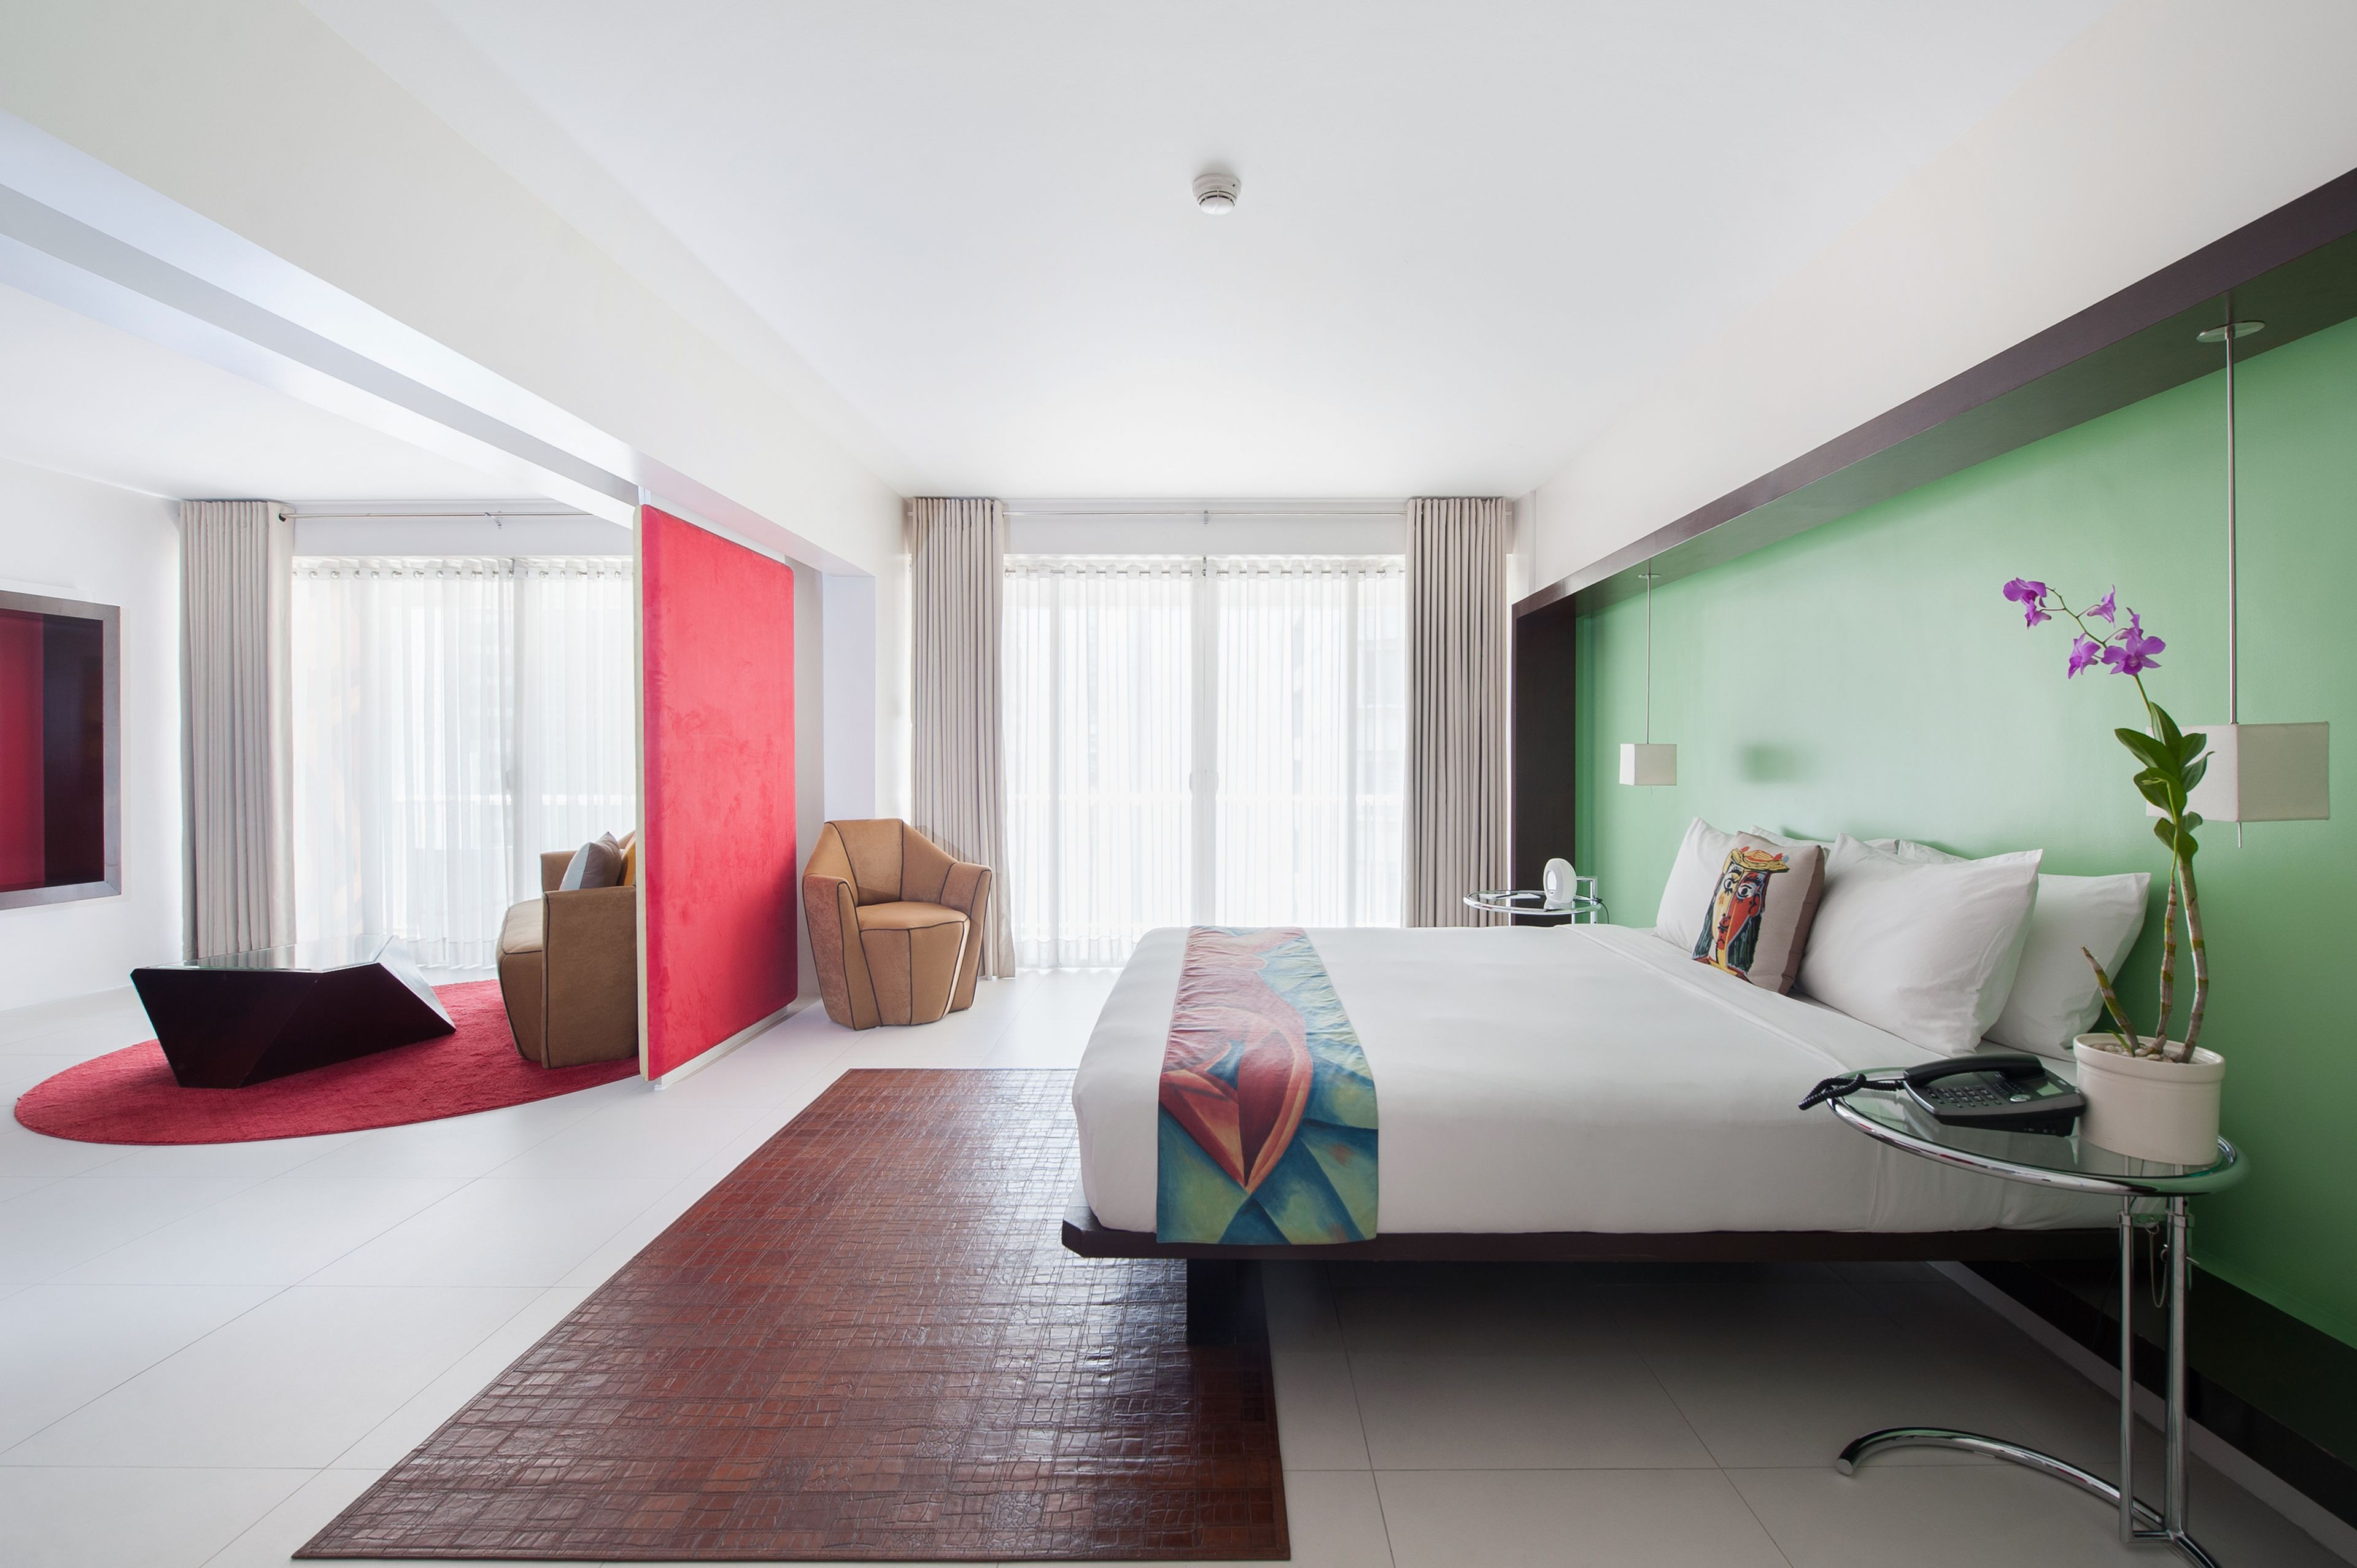 Courtesy of The Picasso Boutique Serviced Residences / Expedia